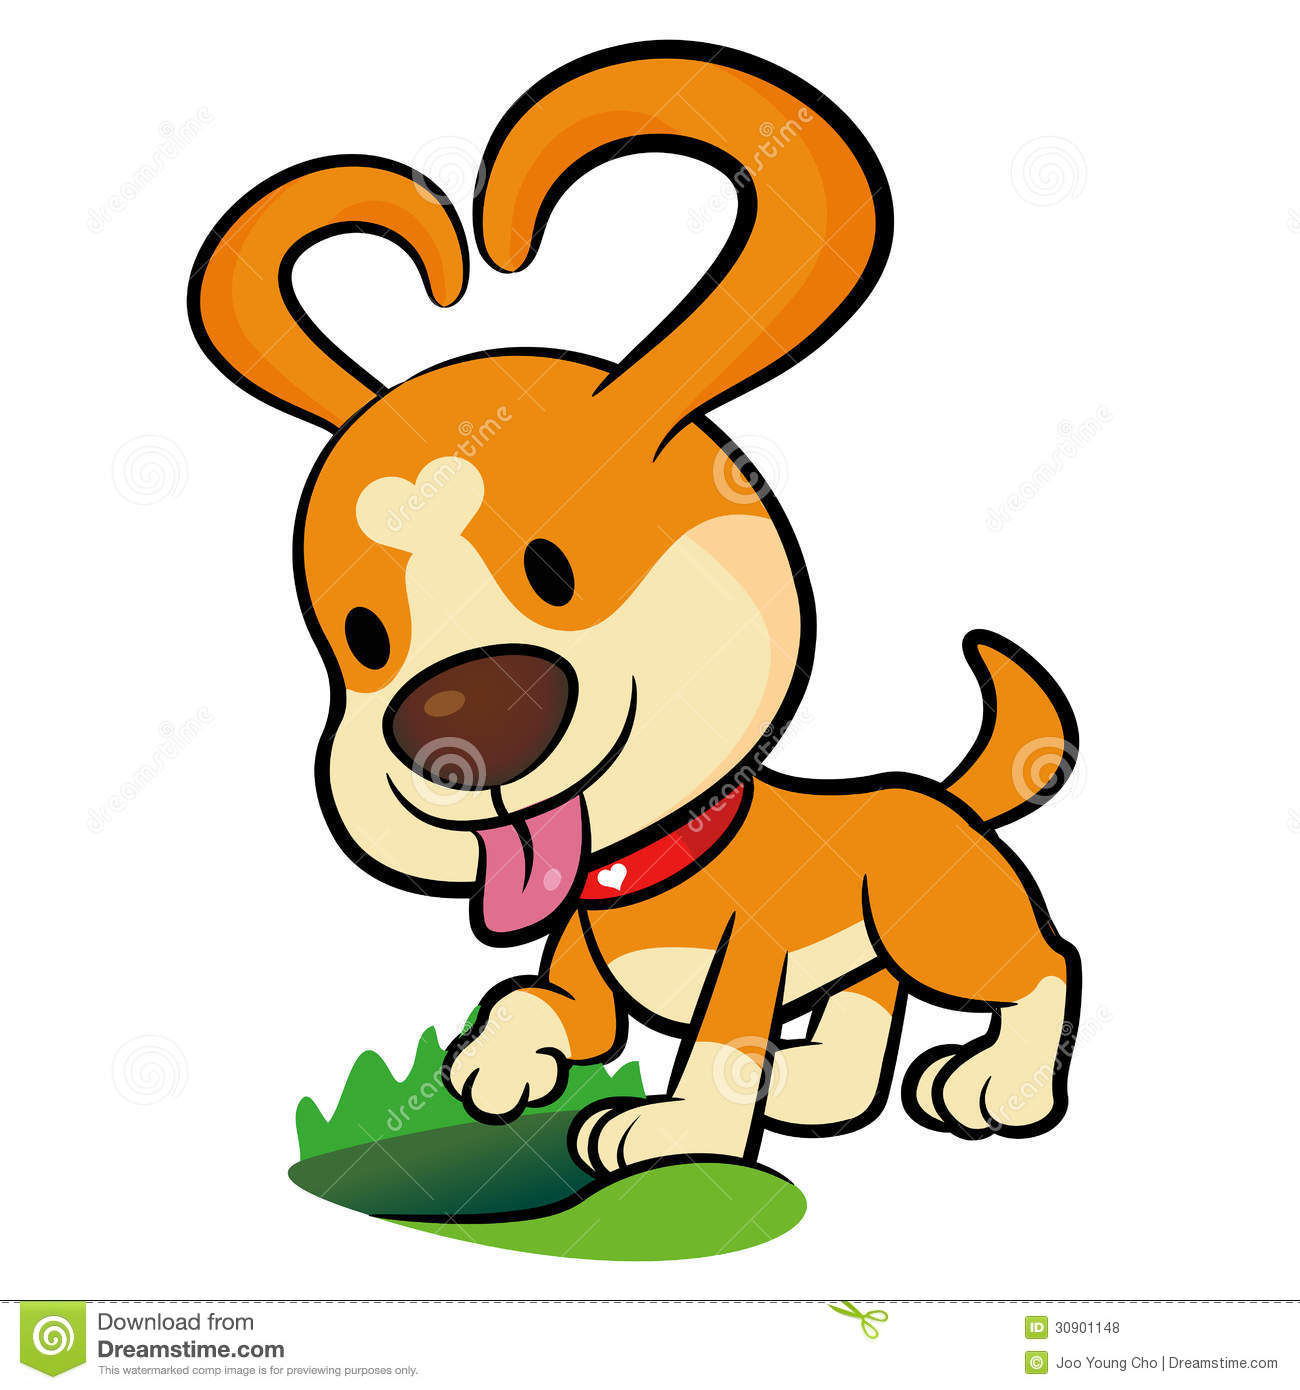 The Puppy Mascot Dug A Hole In The Ground. Animal Character Desi.